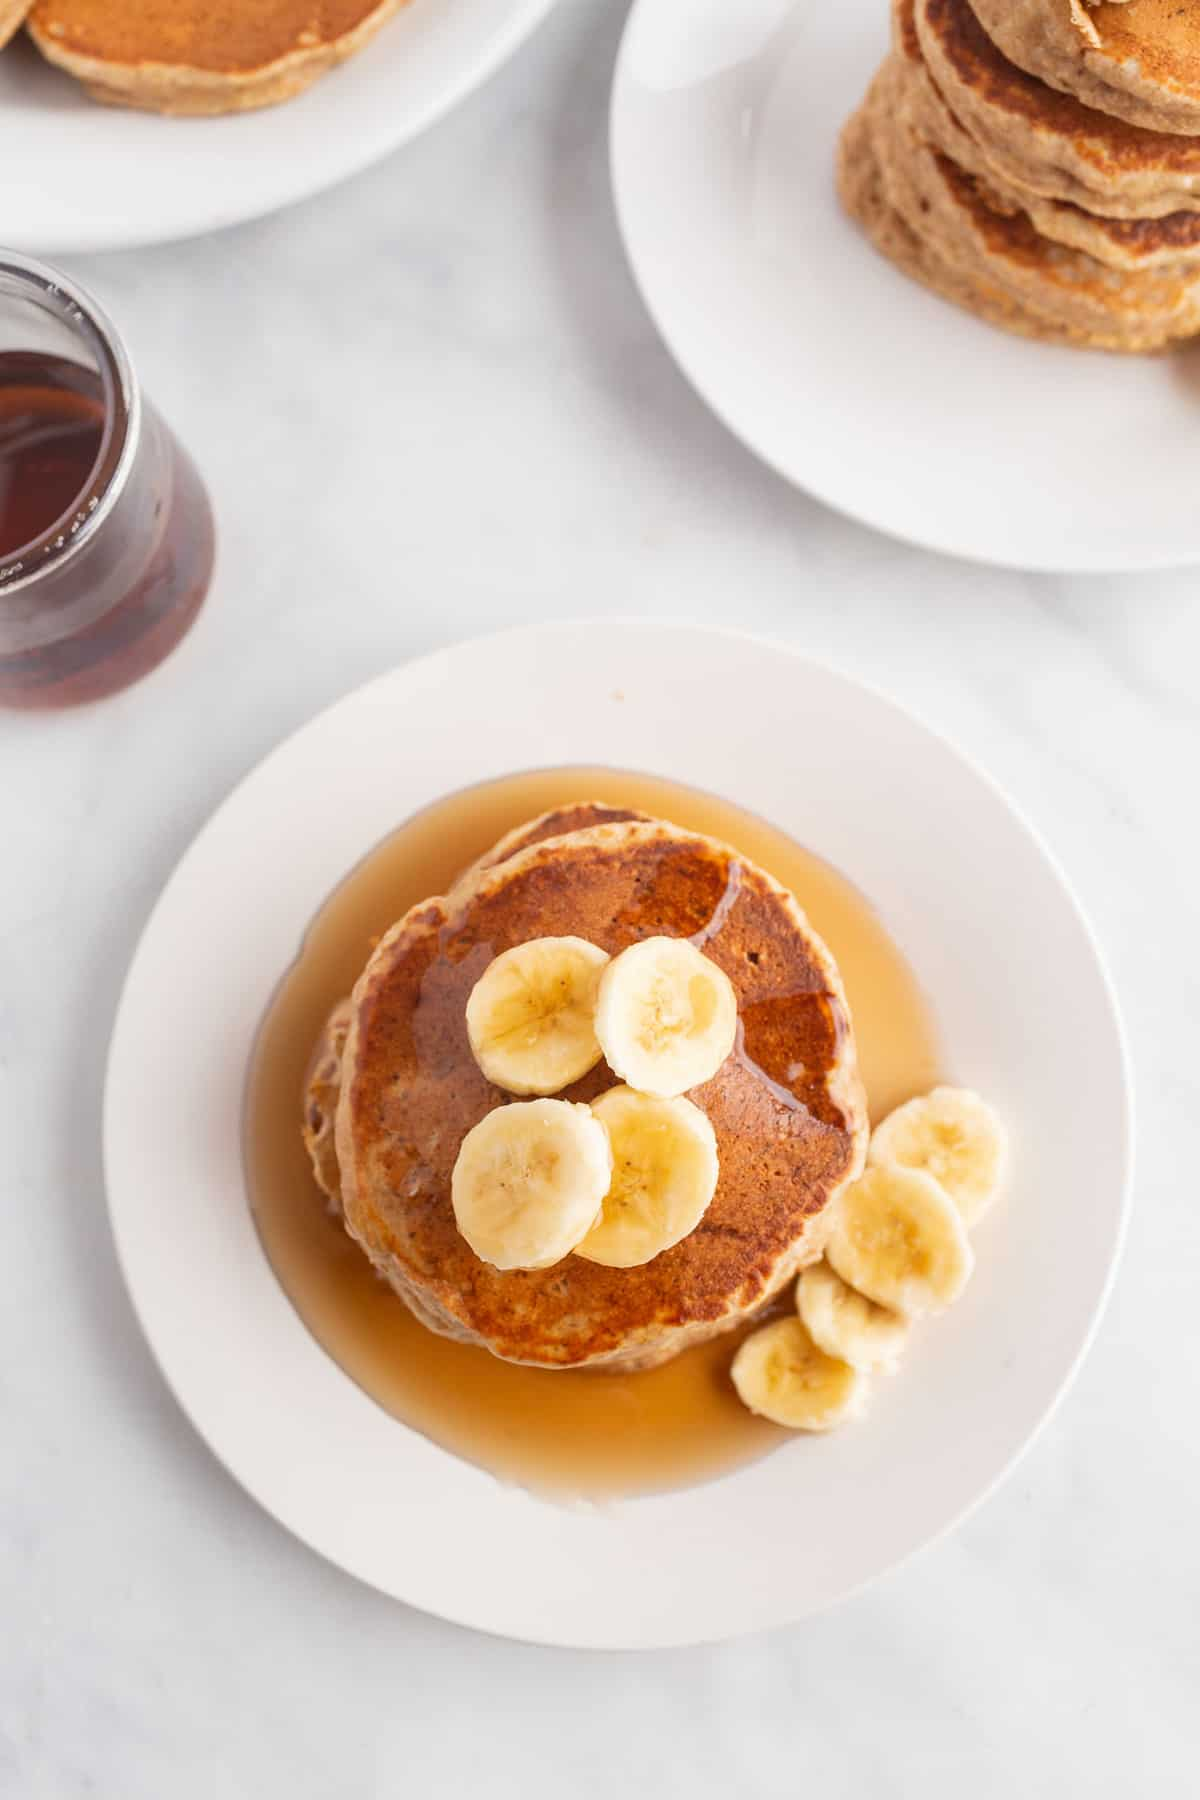 Overhead view of pancakes topped with syrup and bananas.